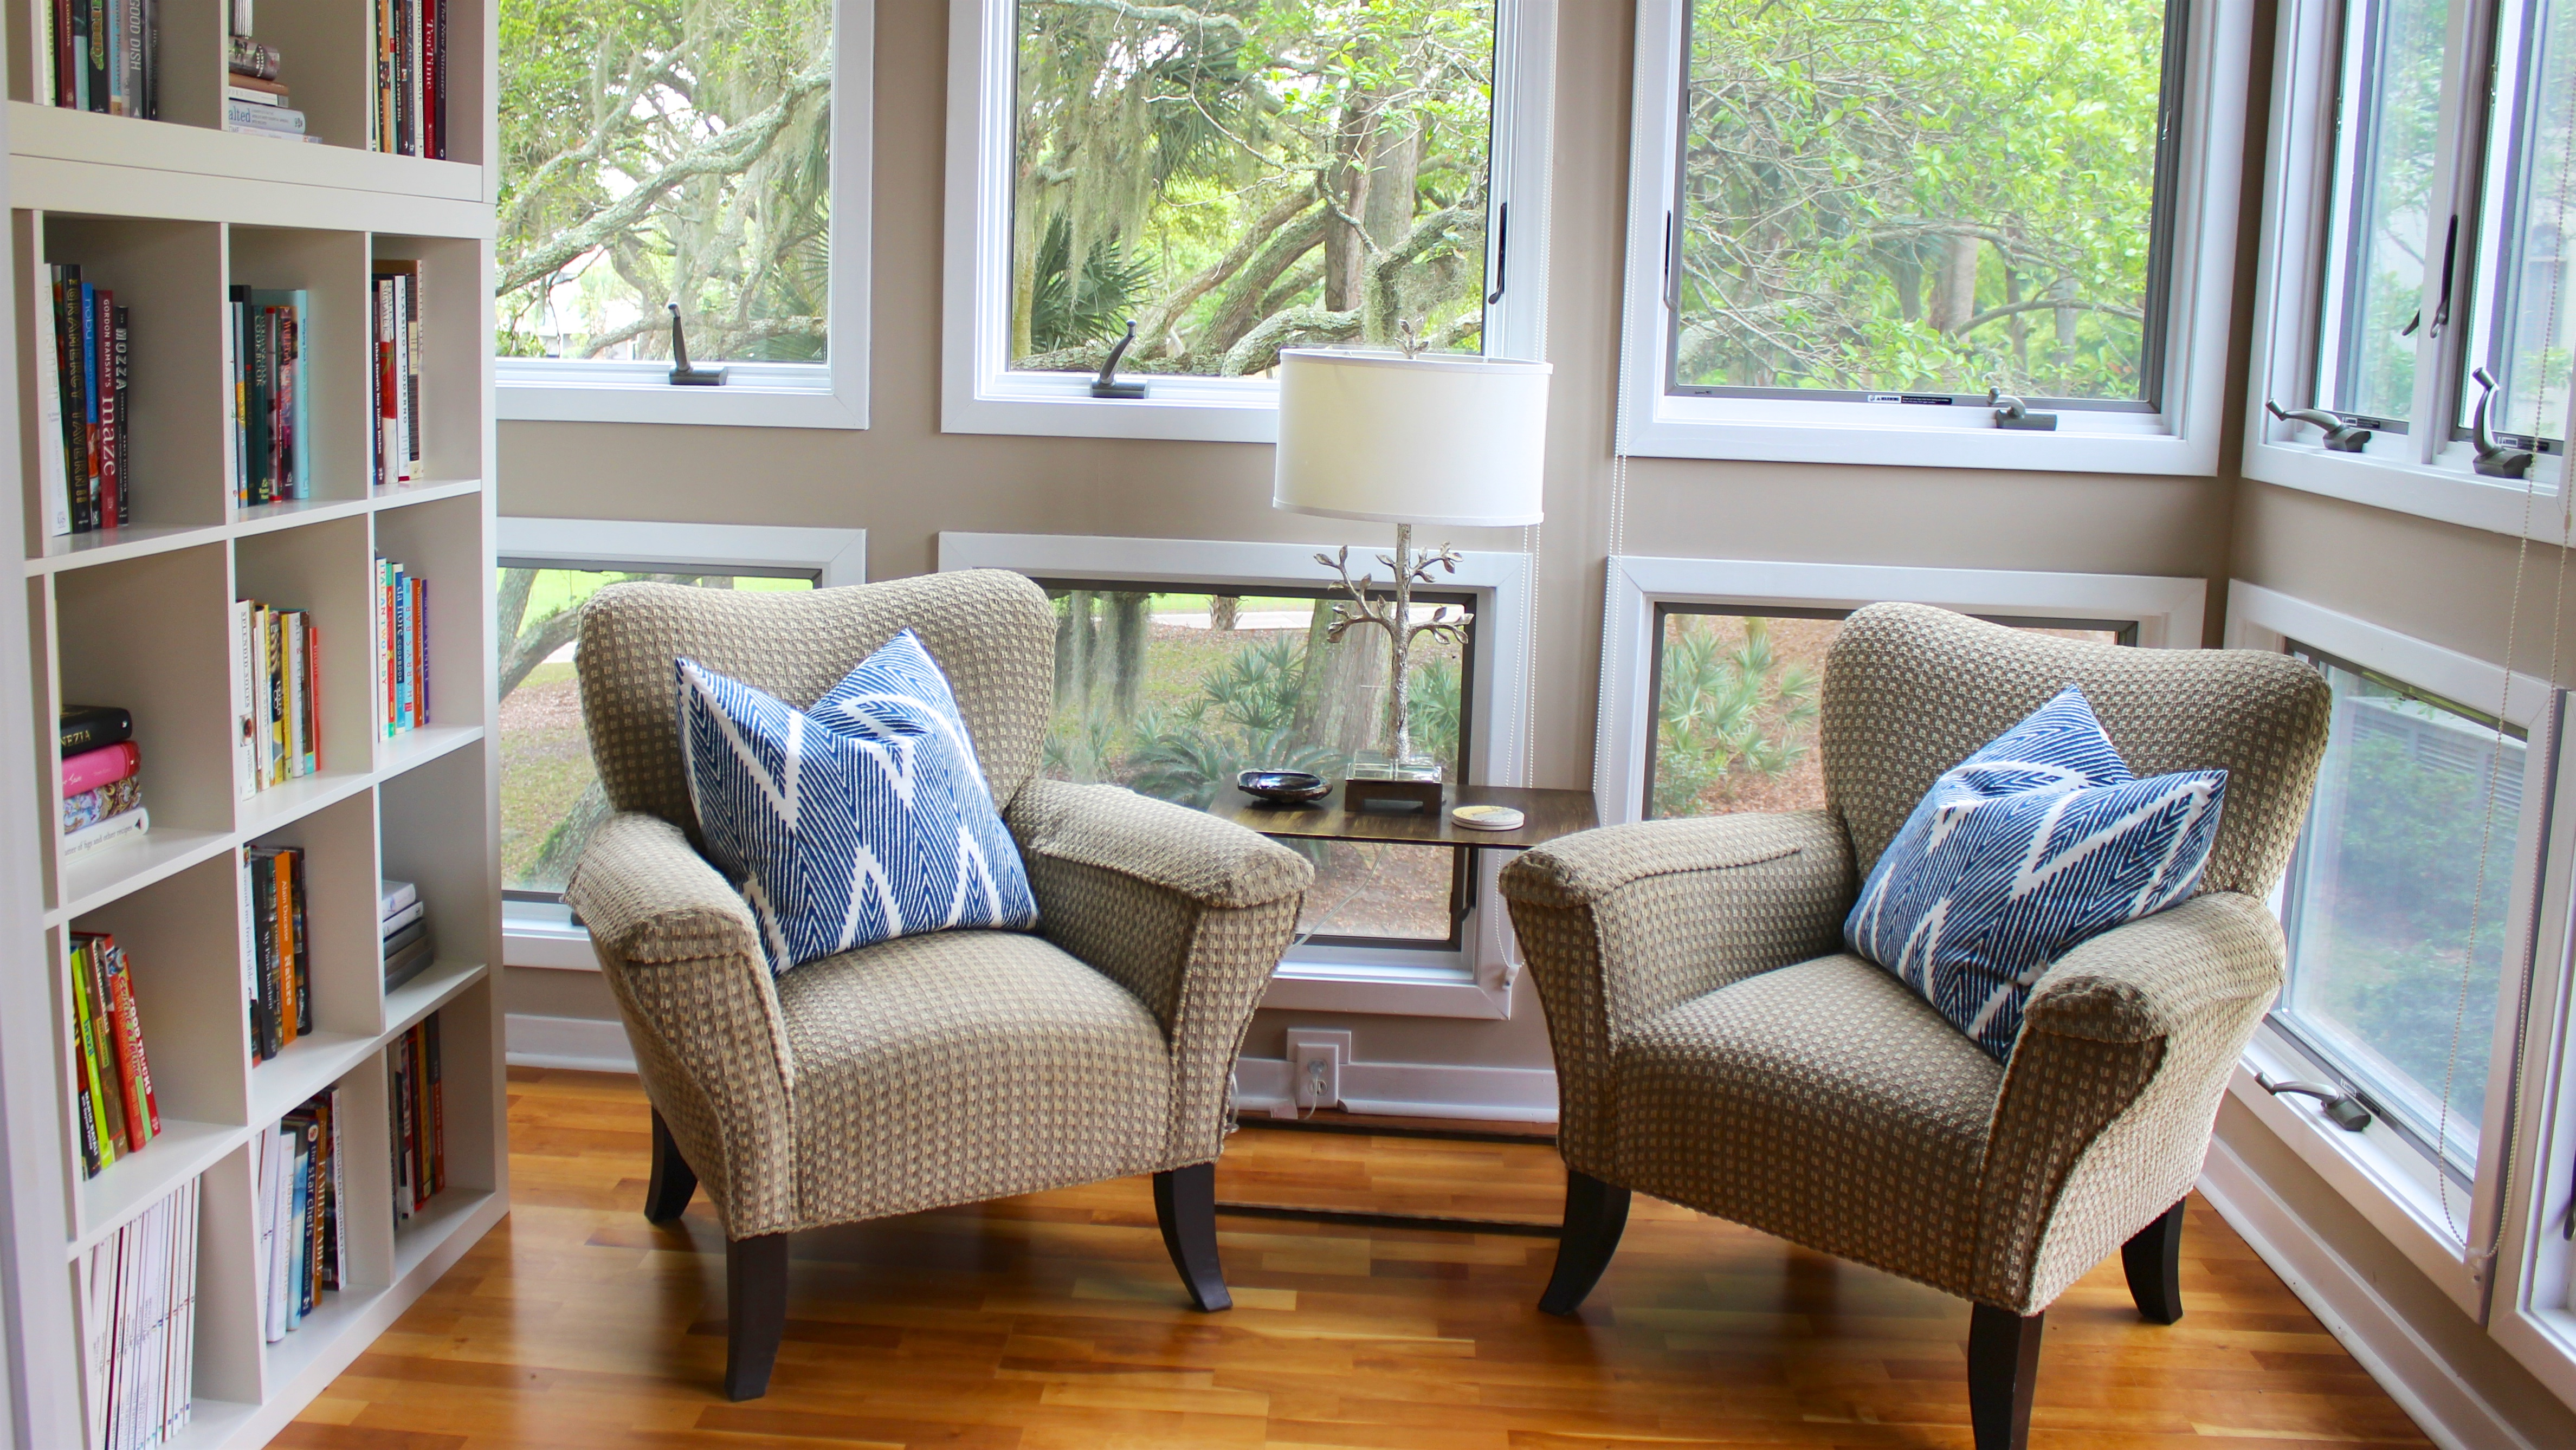 The sunroom has been cleverly divided and has comfortable chairs and book shelves.